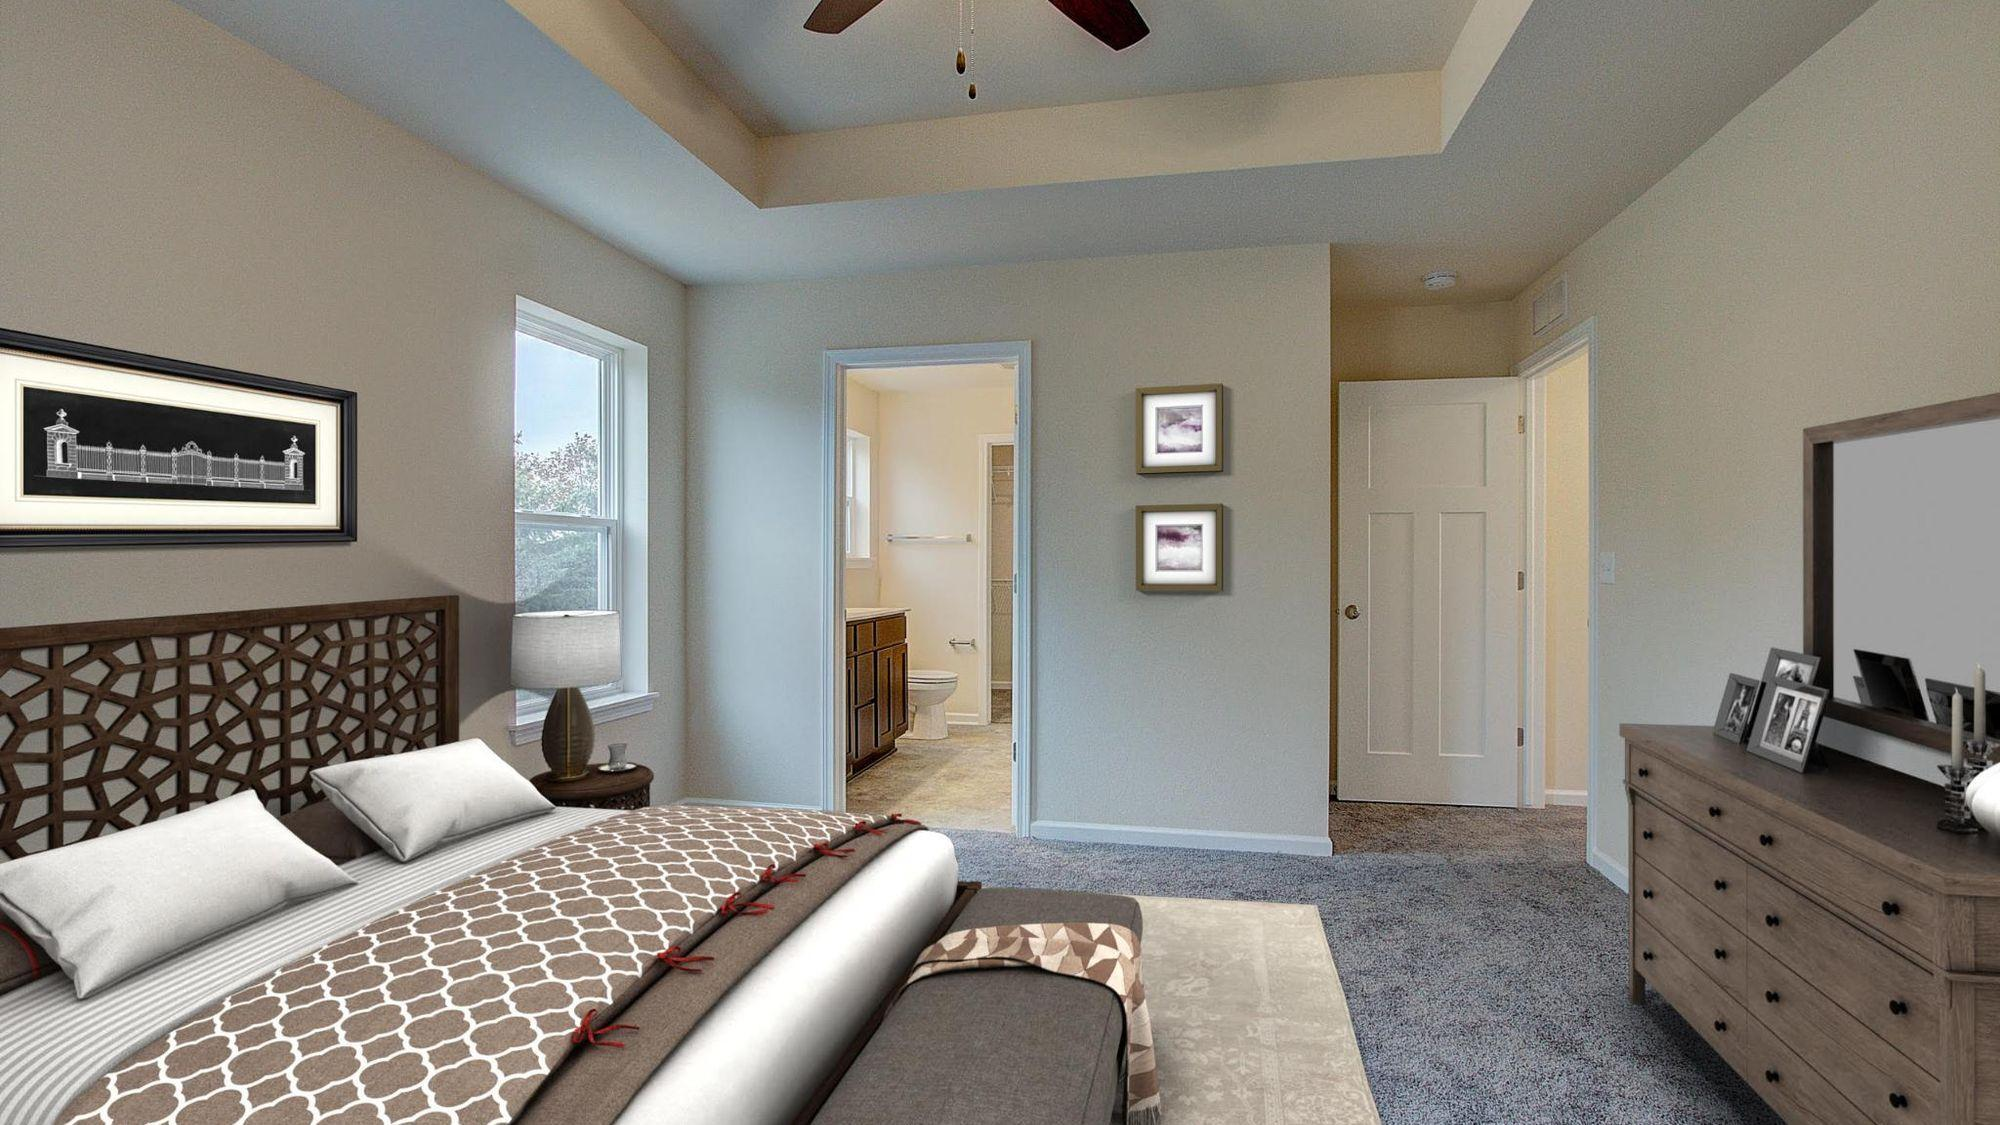 Bedroom featured in the Bridgeport By Harbor Homes in Ozaukee-Sheboygan, WI